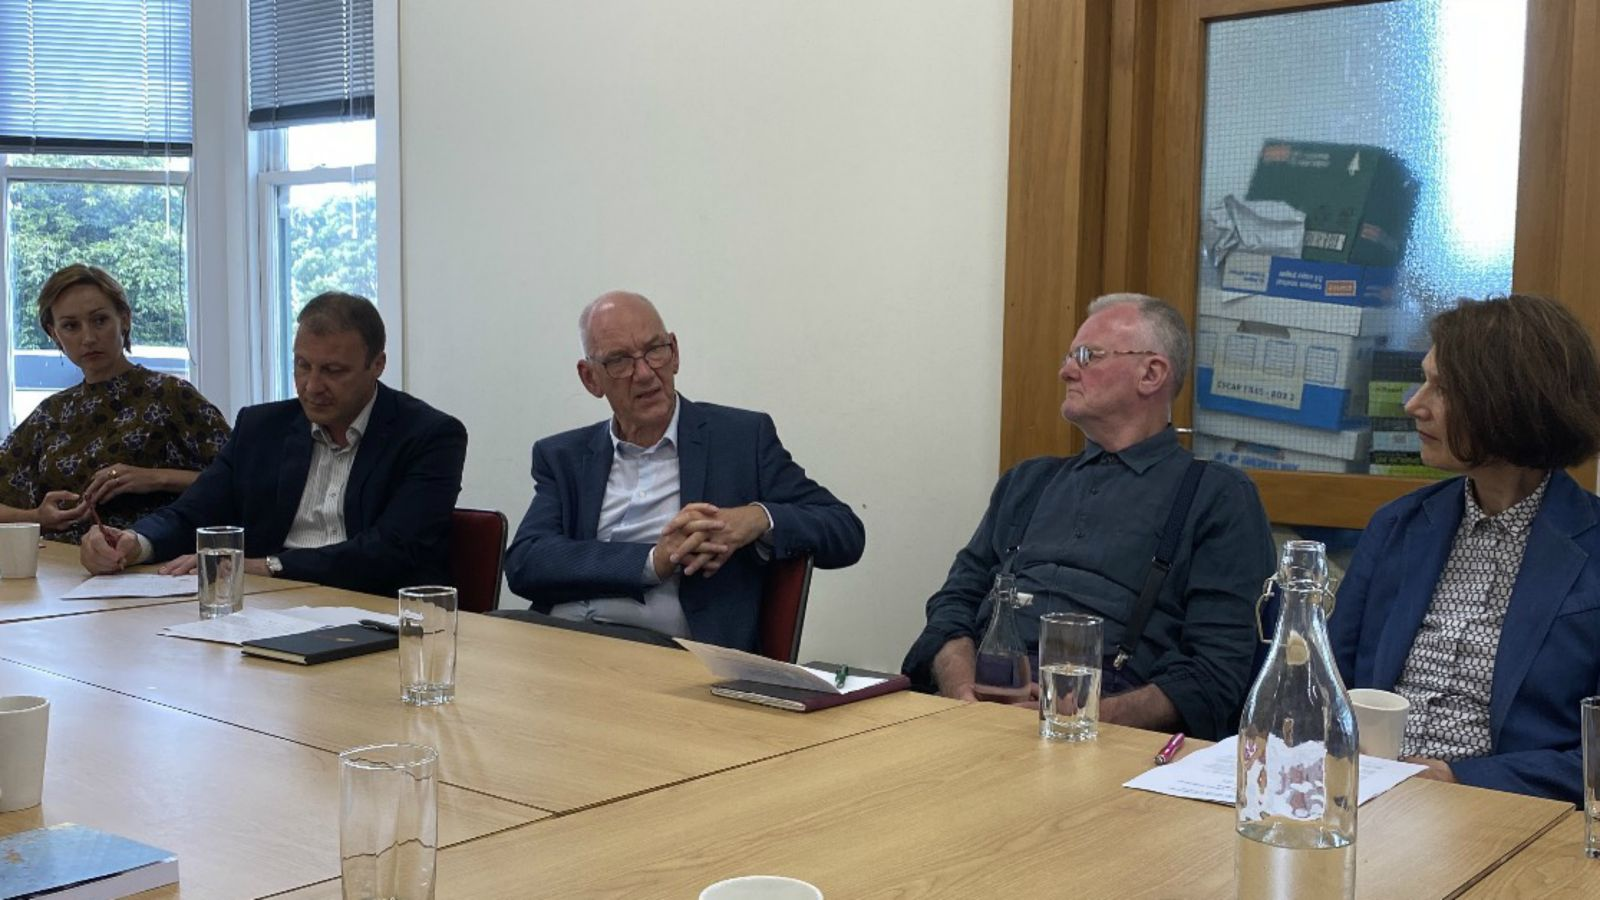 Image of Allan Gyngell roundtable